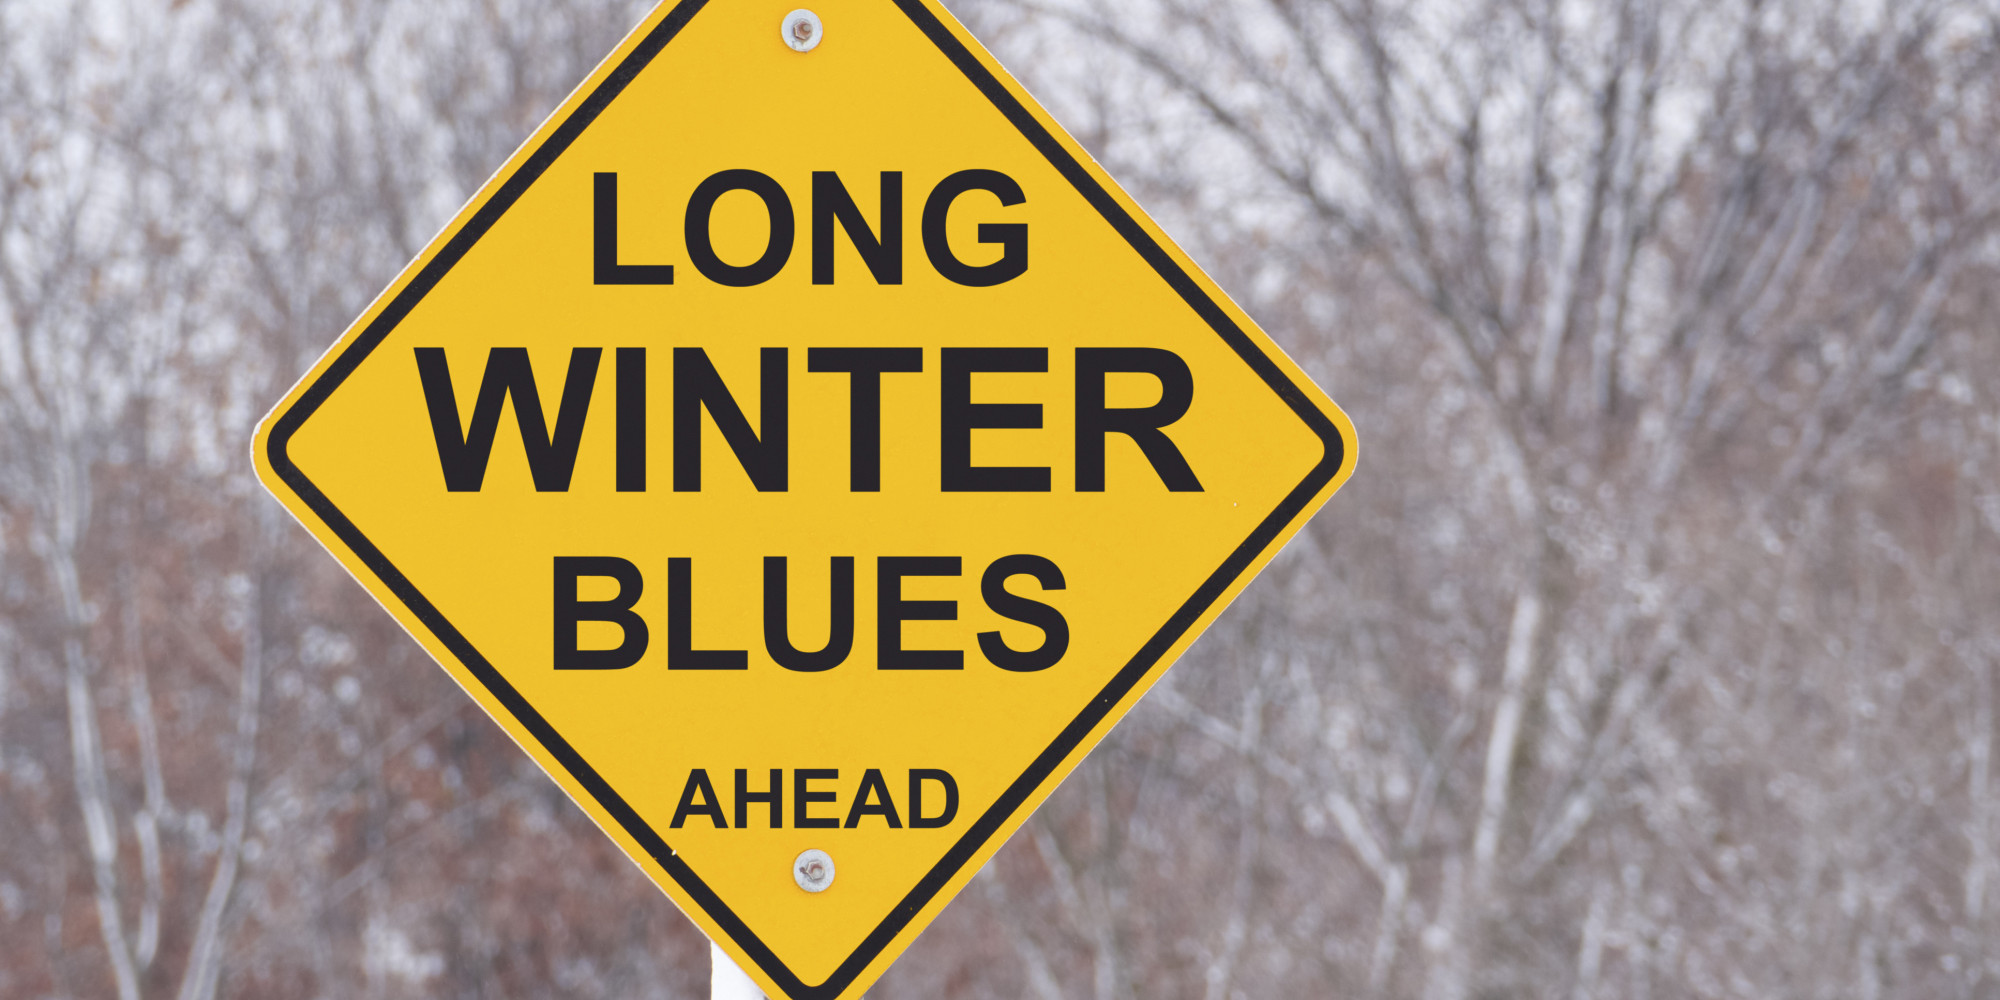 Long Winter Blues Ahead Road Sign